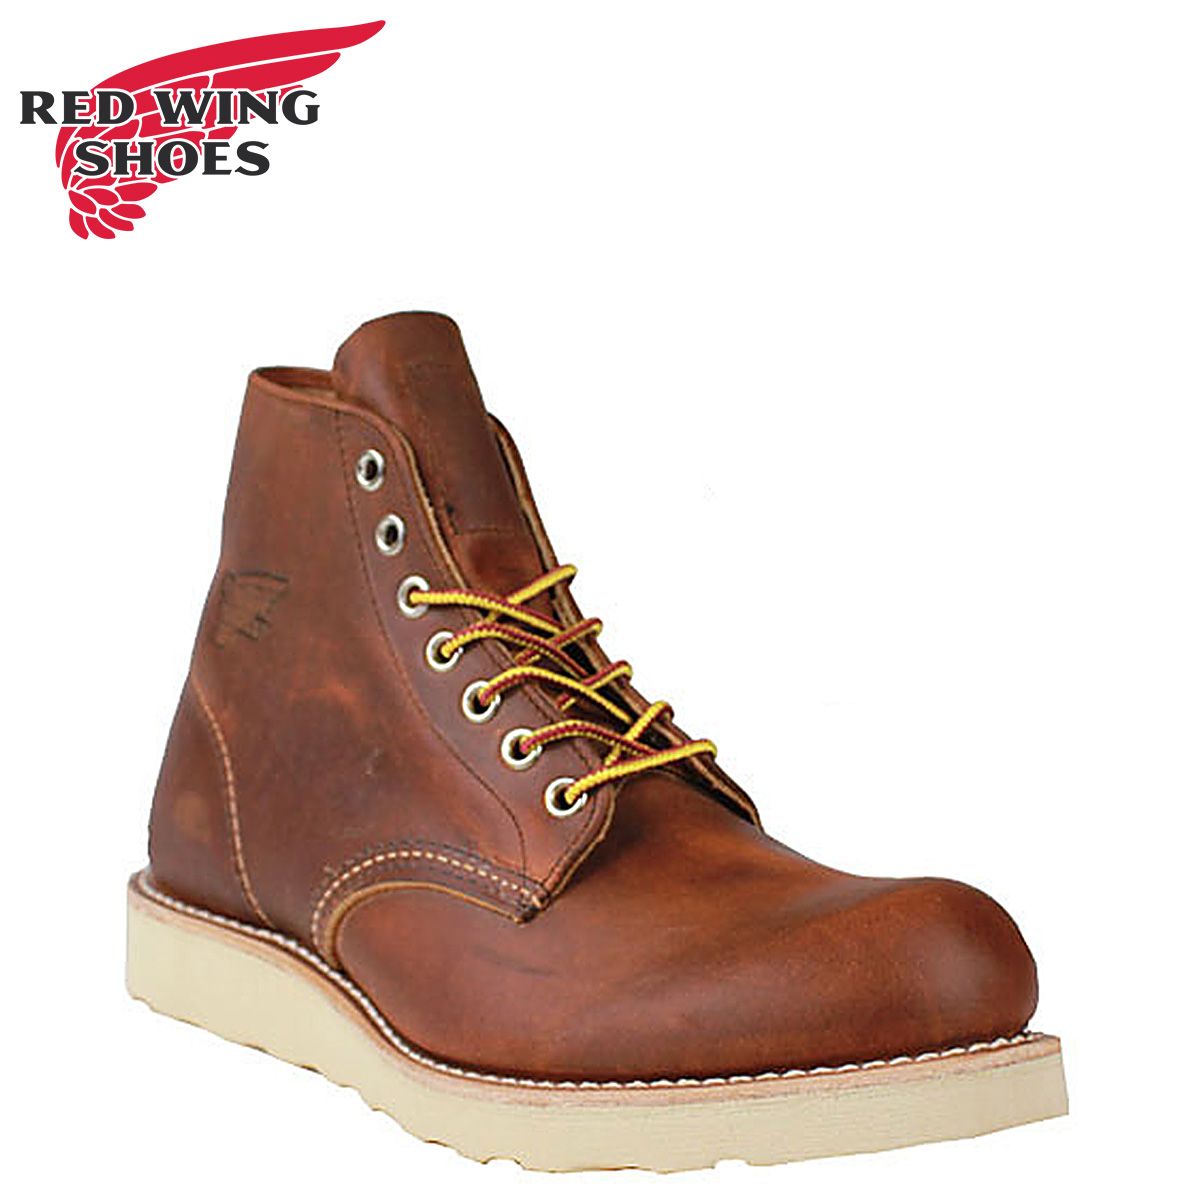 Redwing RED WING 6 inch classic round to boots 9111 6inch Classic Round Toe D wise mens Made in USA Red Wing